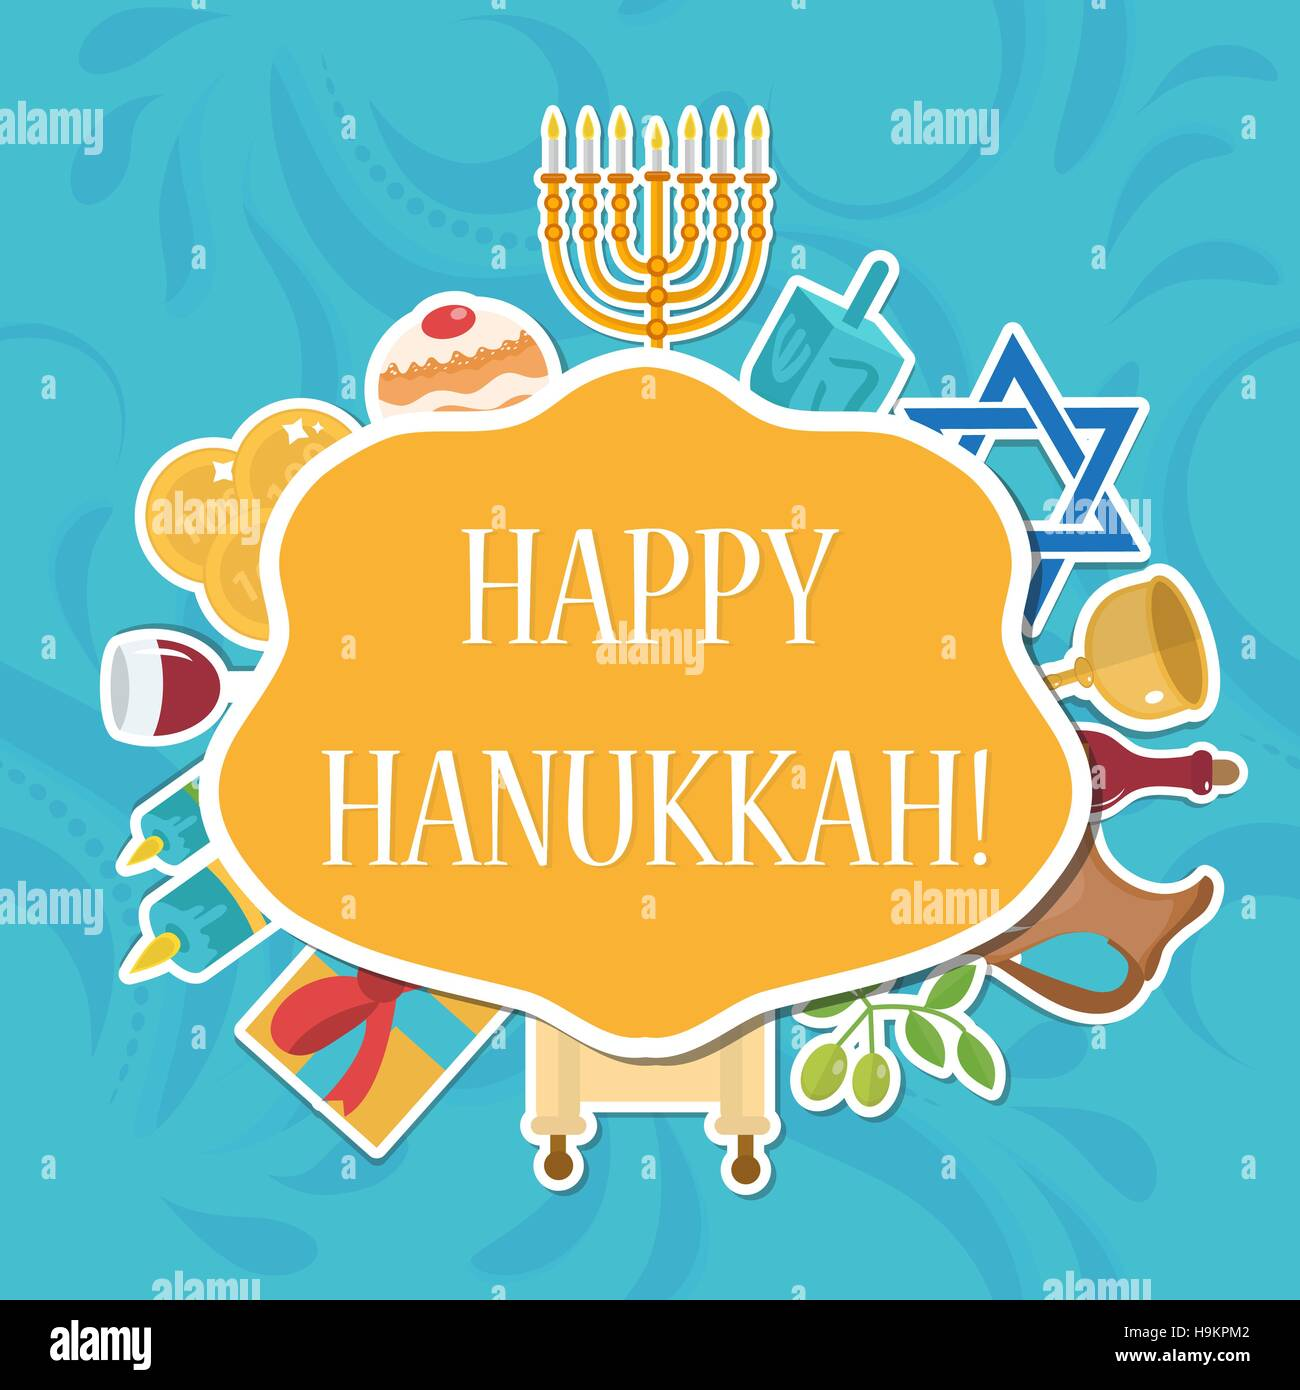 Happy hanukkah greeting card invitation poster jewish festival of happy hanukkah greeting card invitation poster jewish festival of lights feast dedication with menorah vector illustration stopboris Images